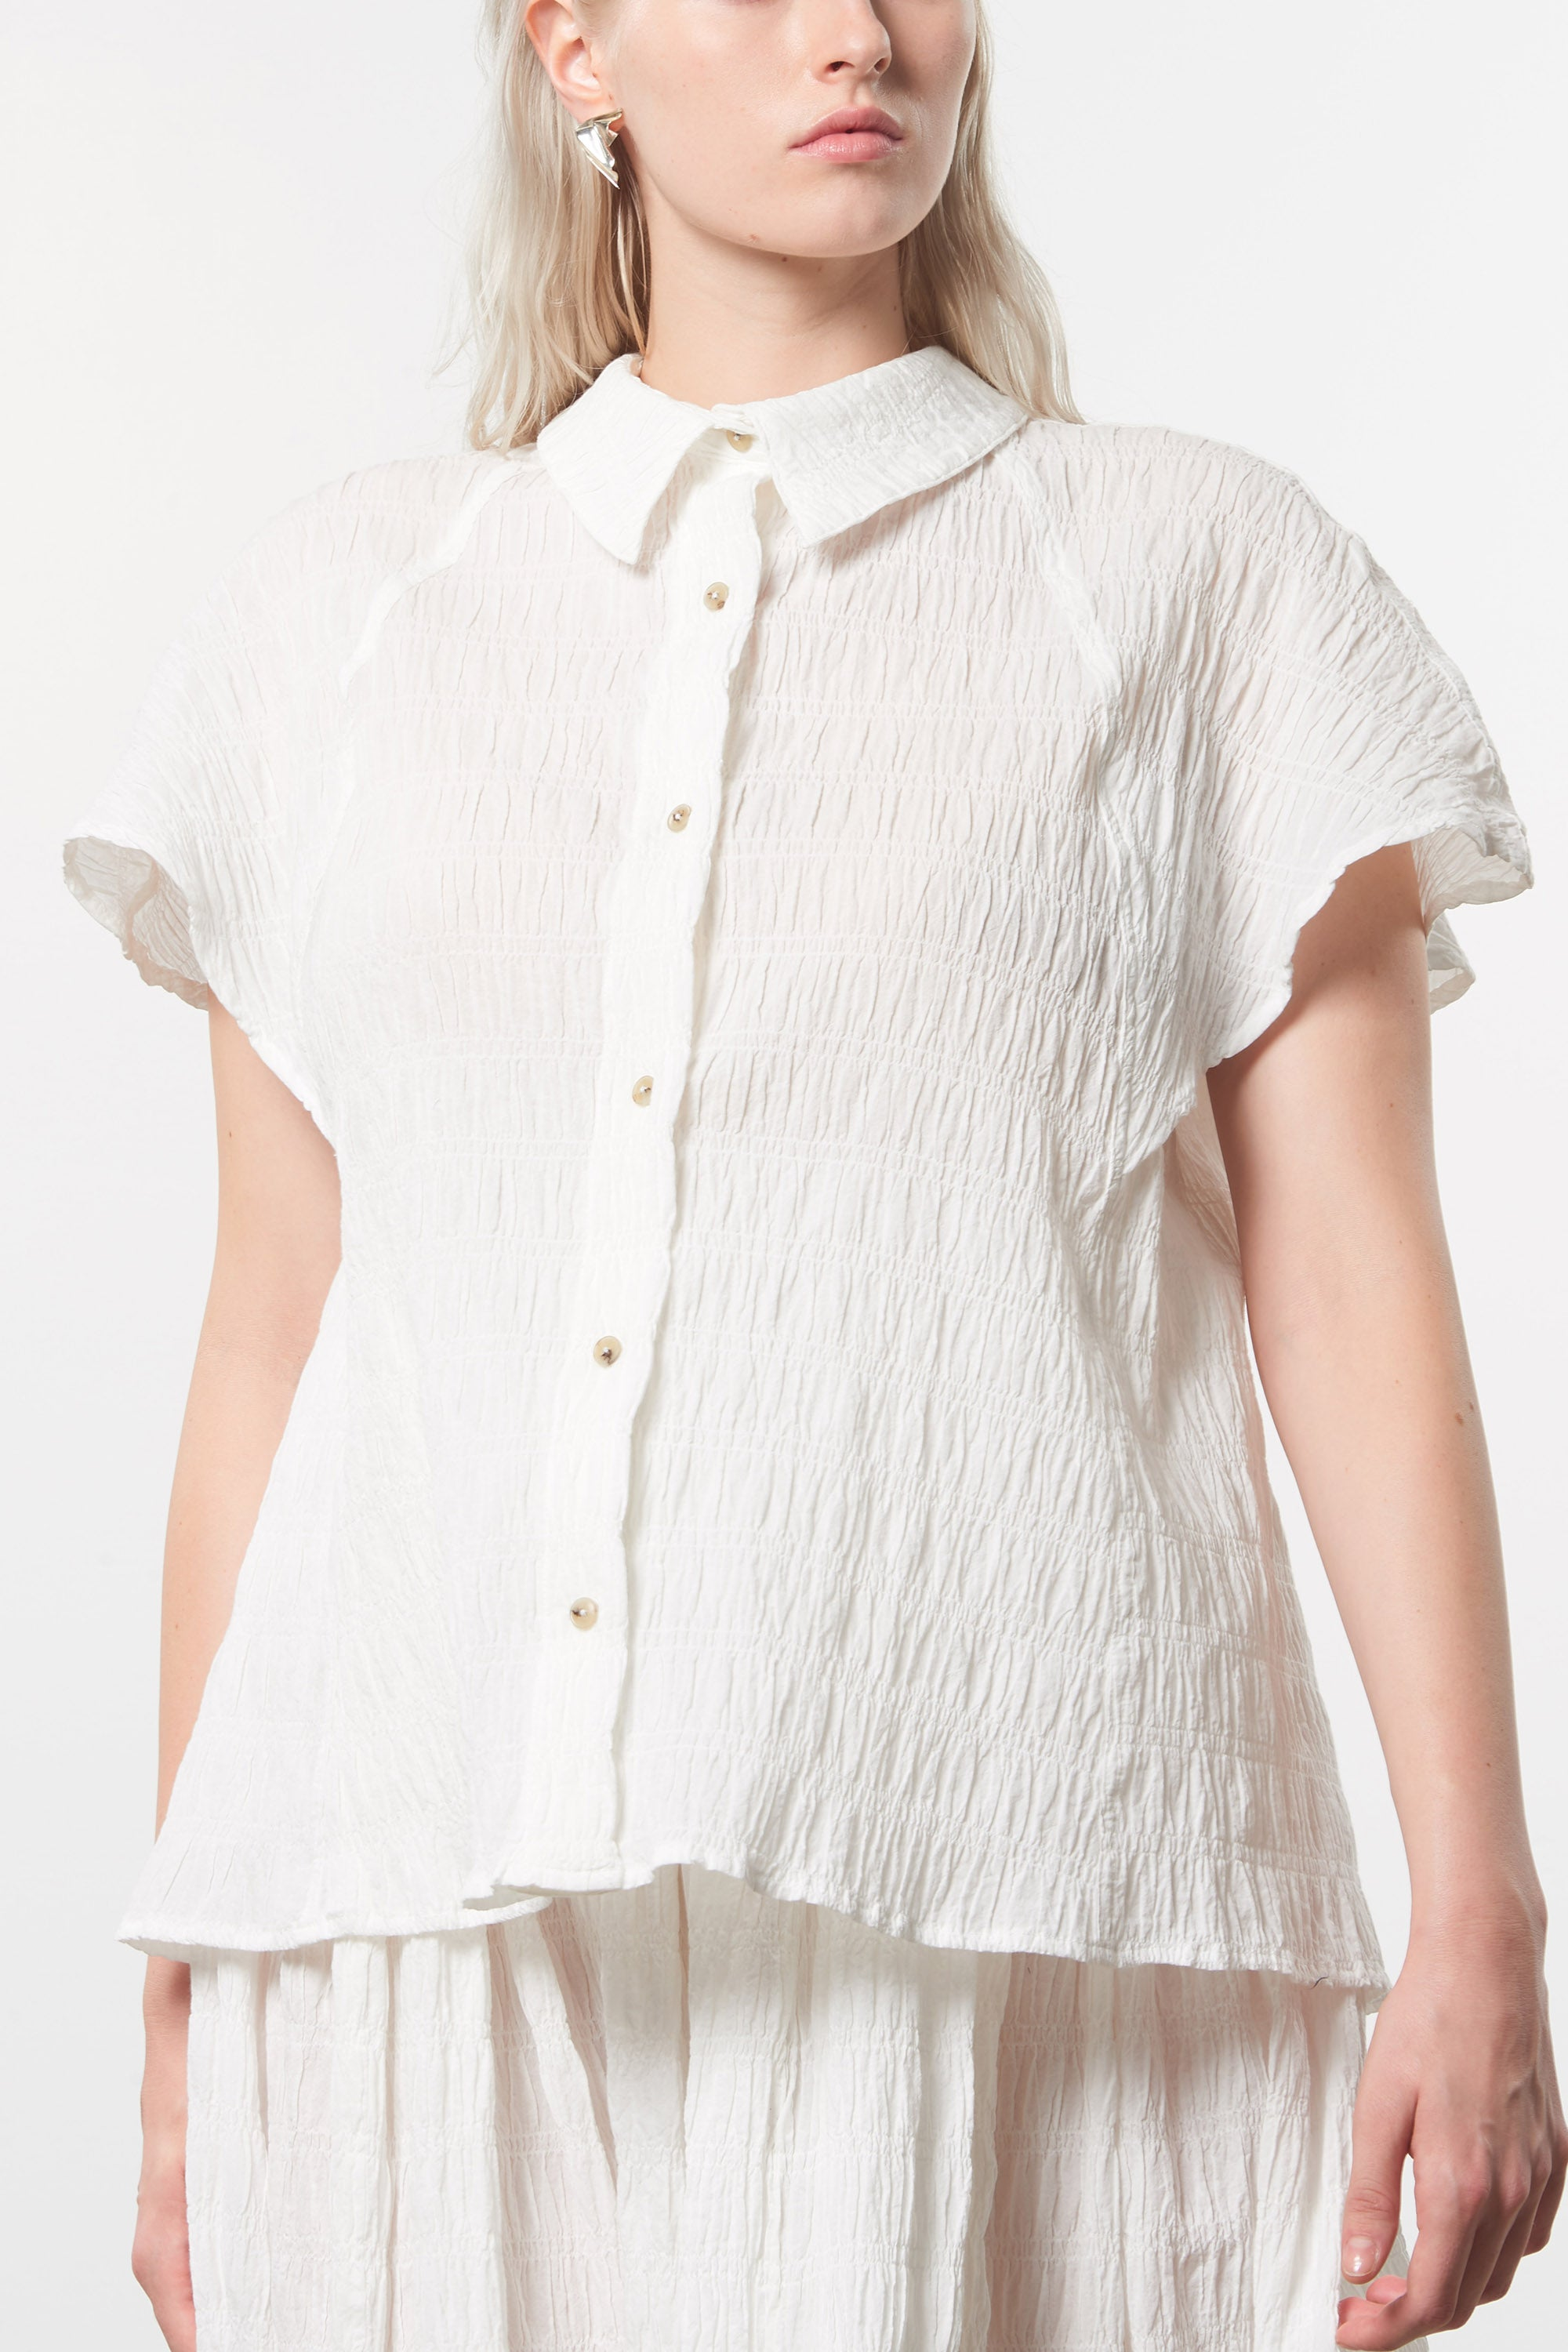 Mara Hoffman Extended White Phebe Top in organic cotton (front detail)